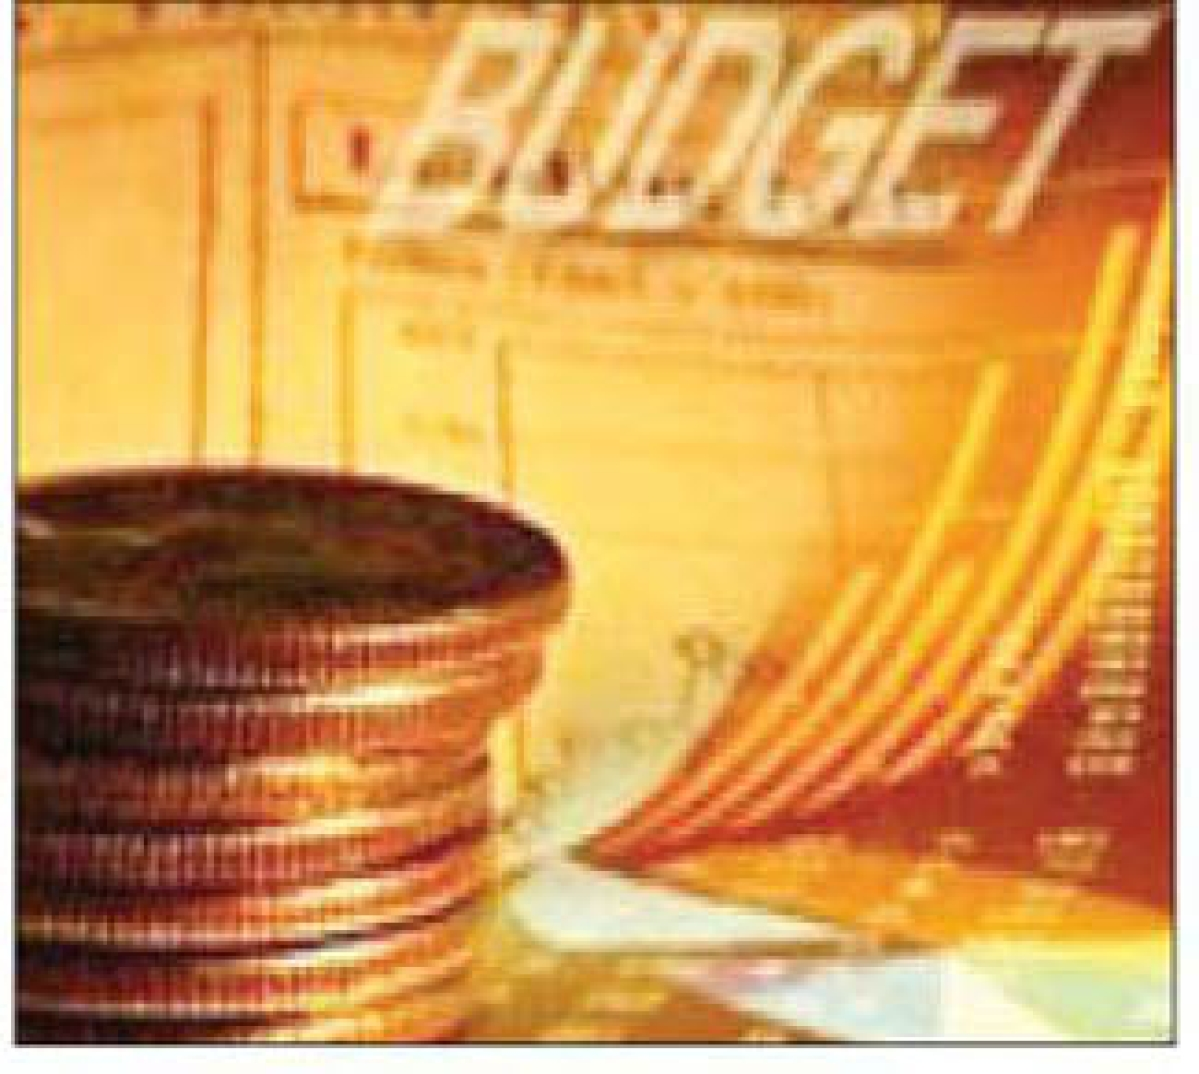 Budget will cut prices, provide relief to low-income groups, hope people